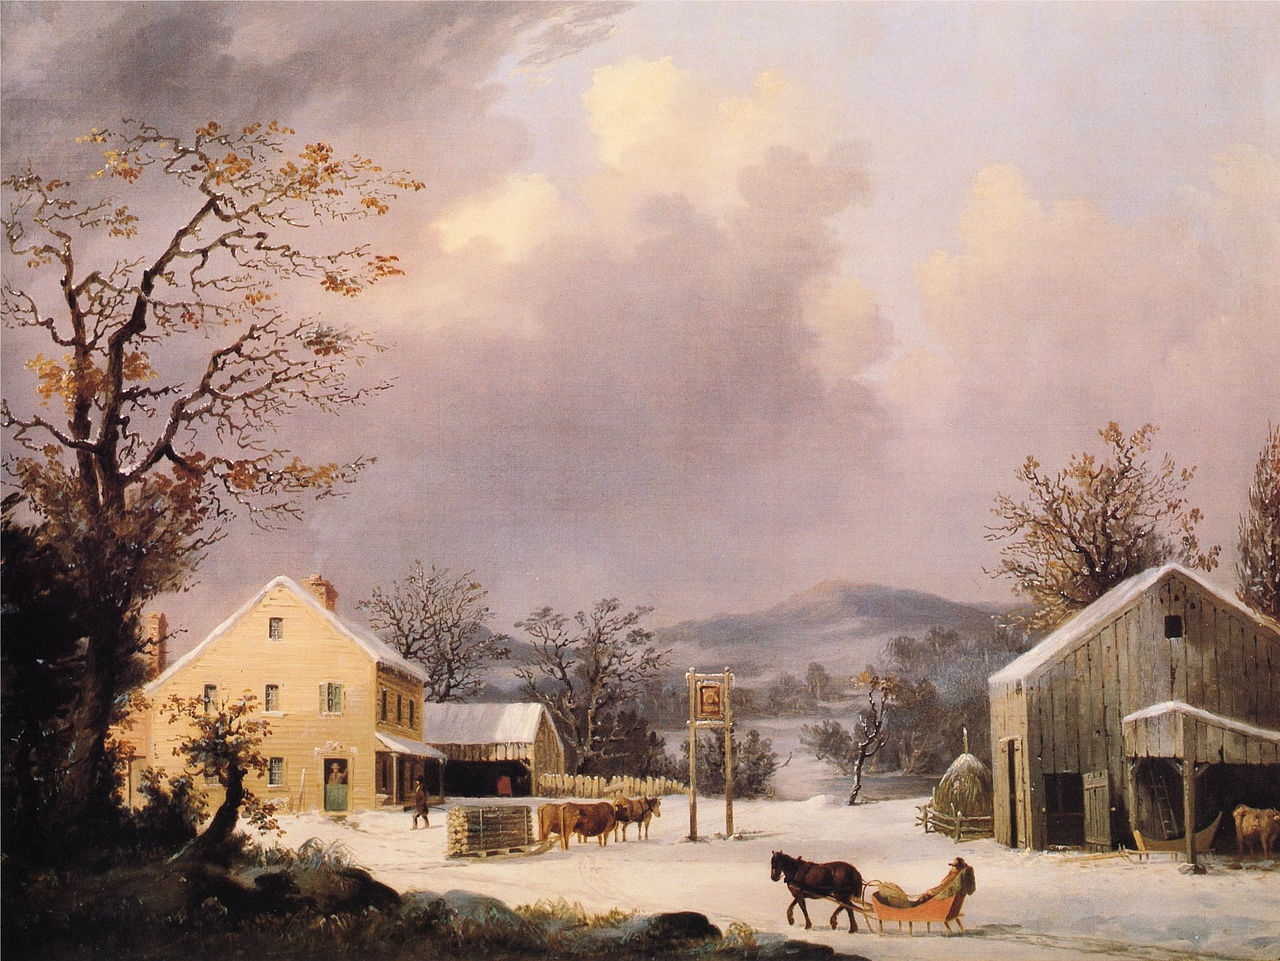 FileGeorge Henry Durrie Jones Inn WinterJPG Wikipedia